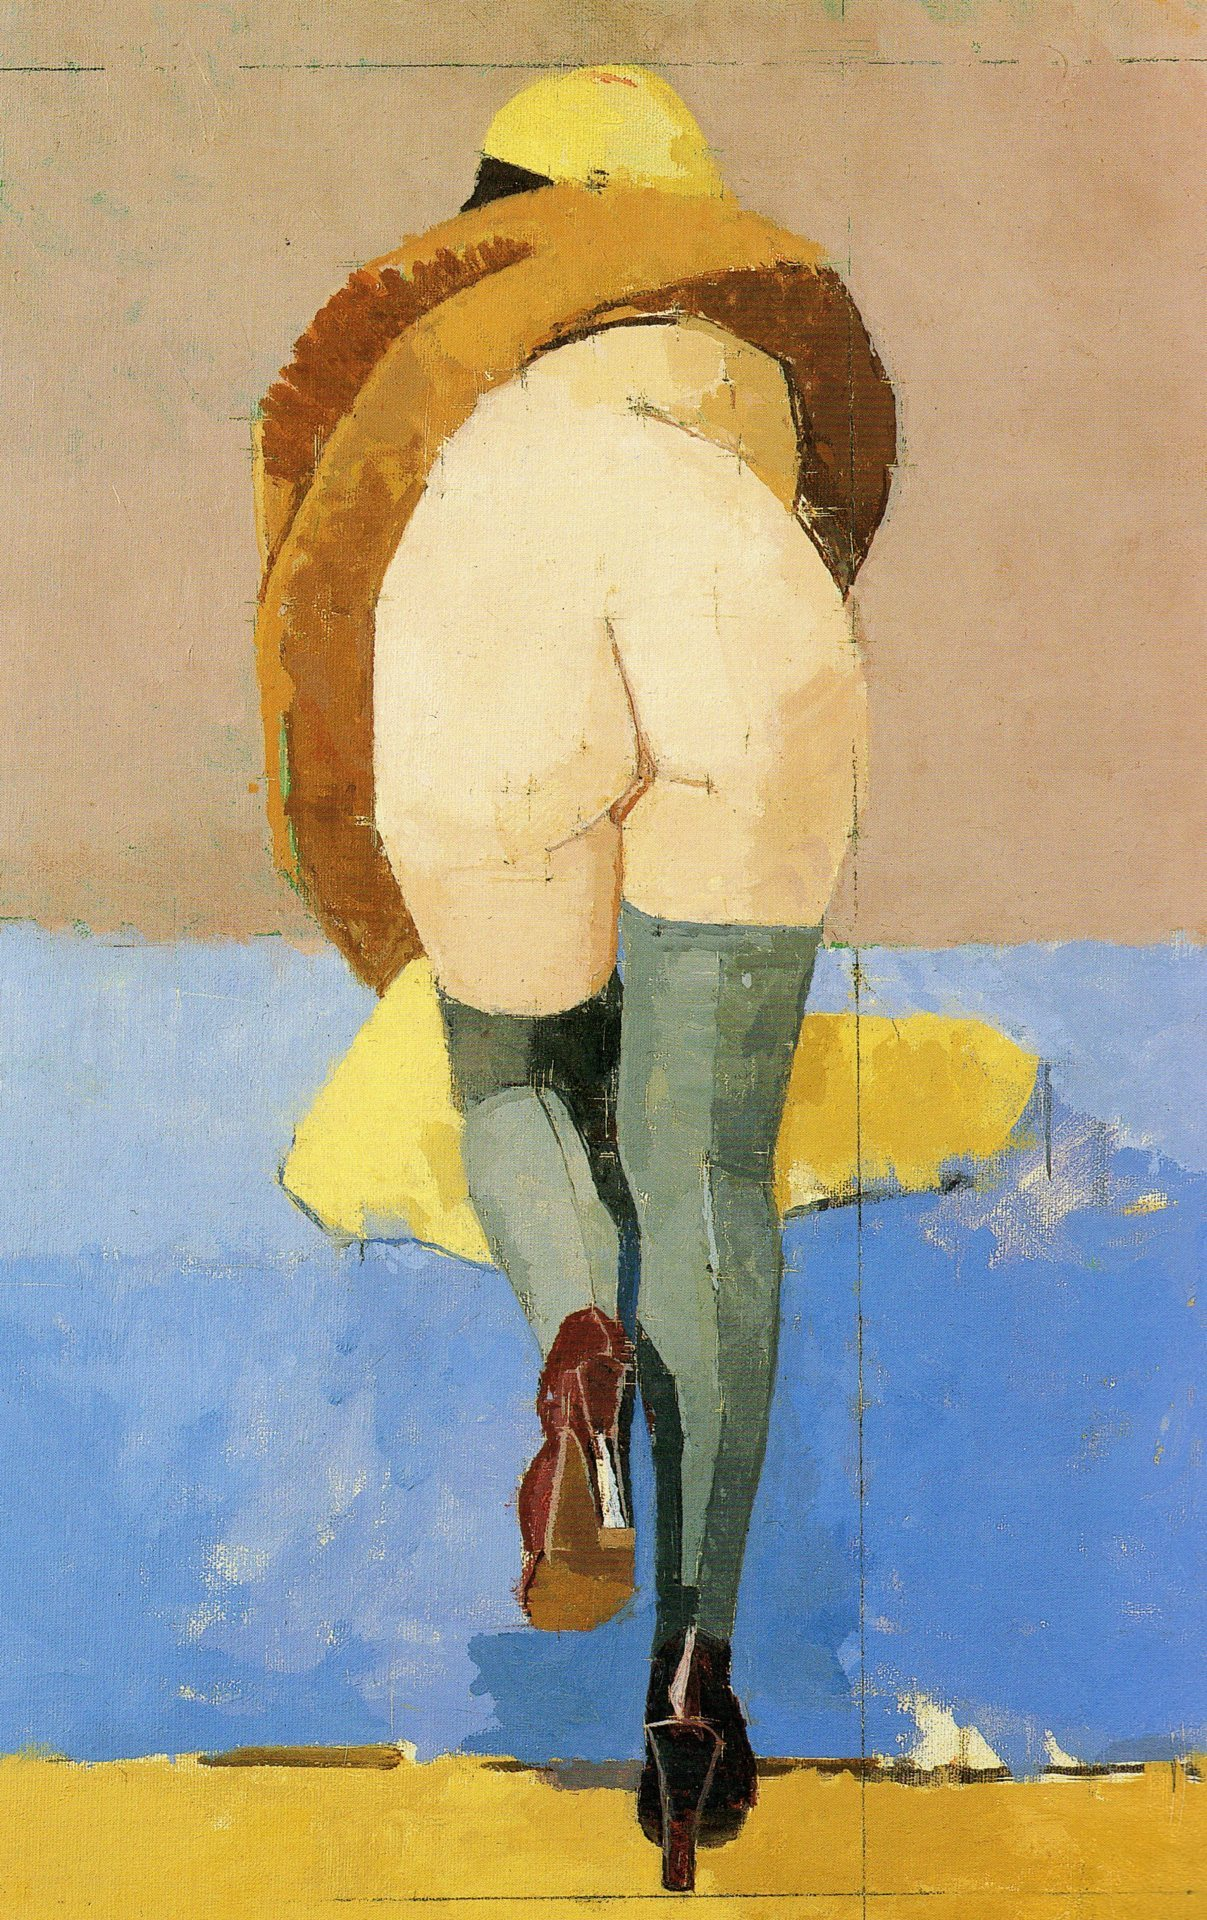 Euan Uglow, Model Climbing Stairs Rear End, 1995, Oil on Canvas, Marlborough Fine Art